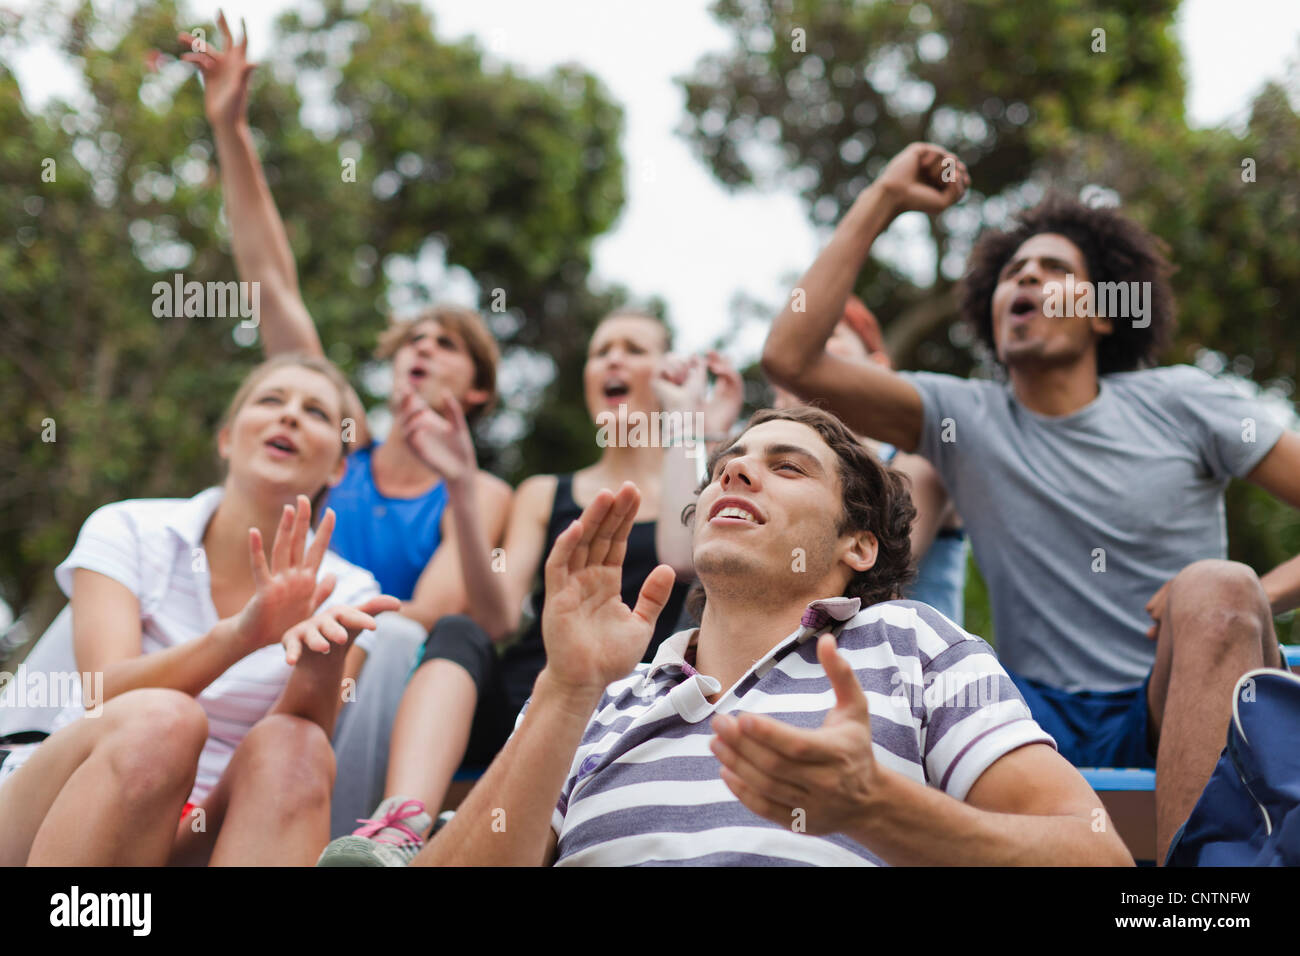 Friends cheering at sporting event - Stock Image